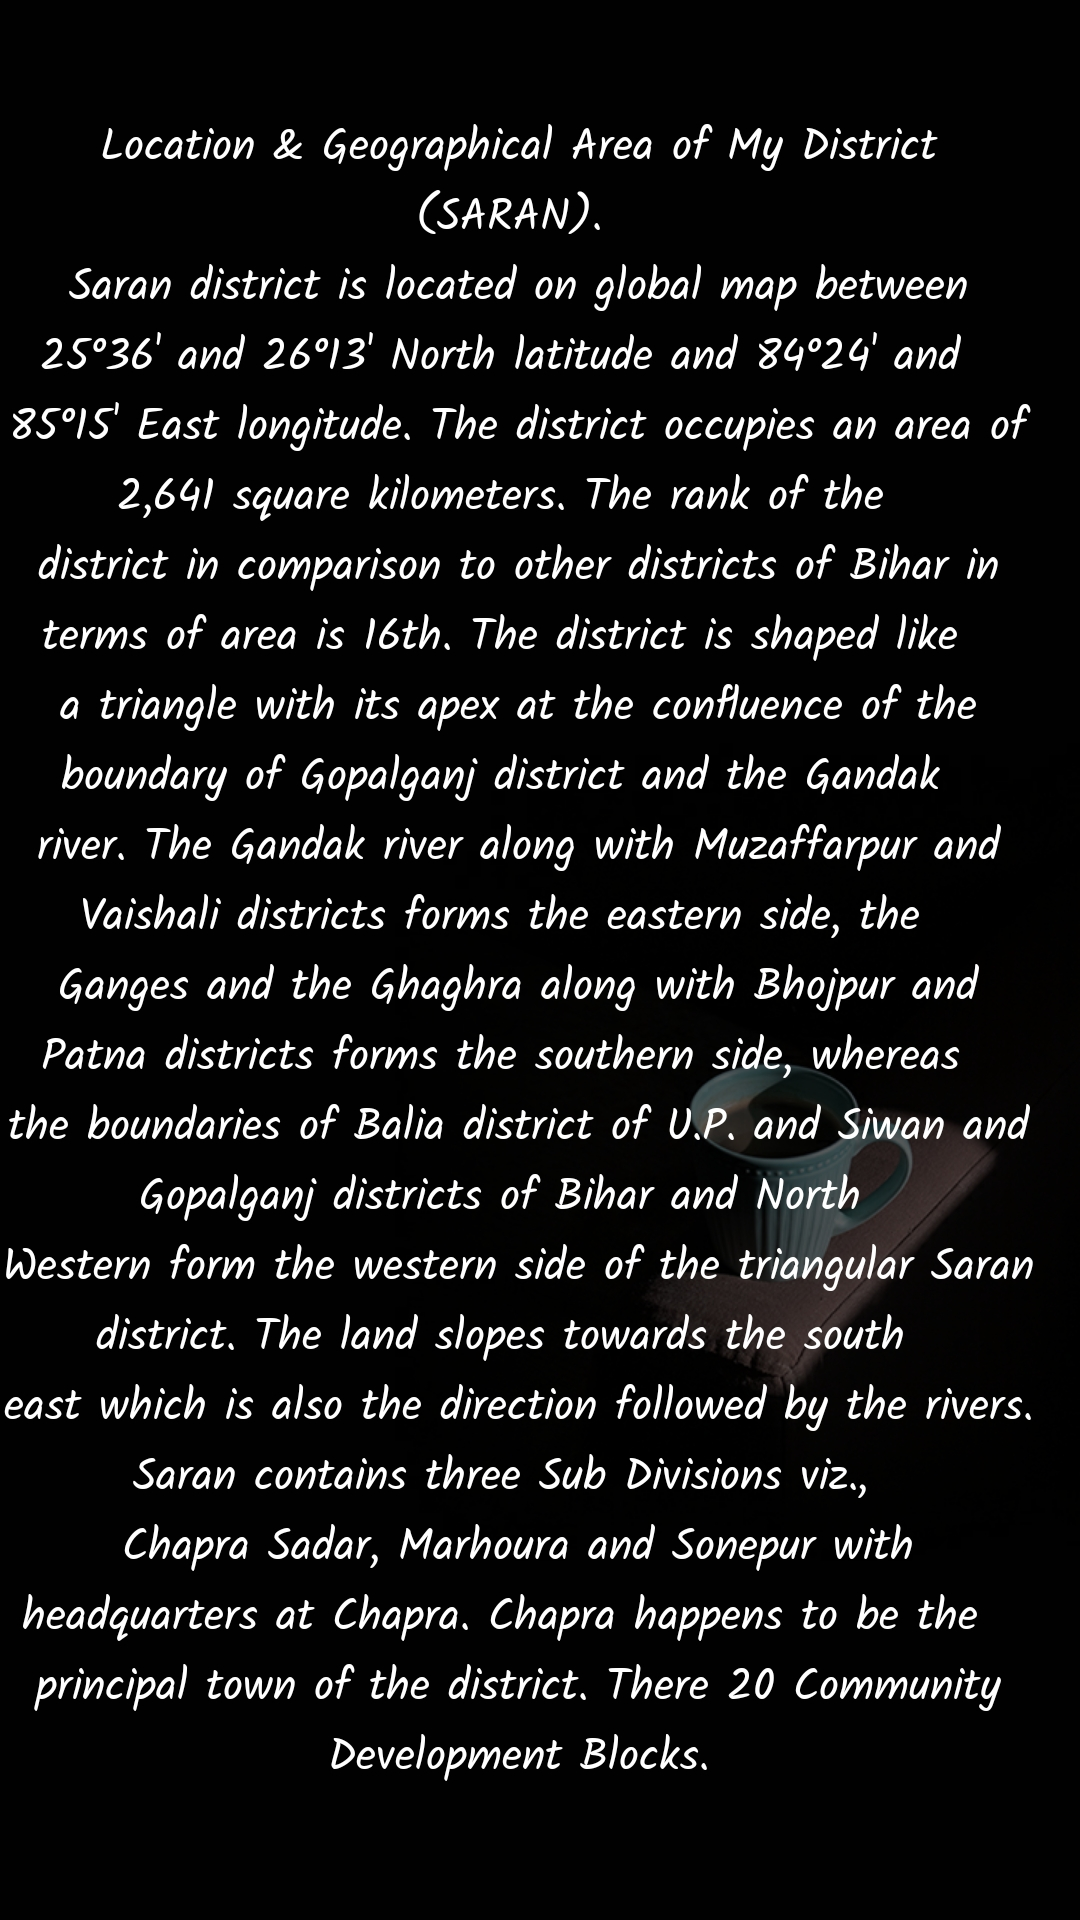 Location & Geographical Area of My District (SARAN).